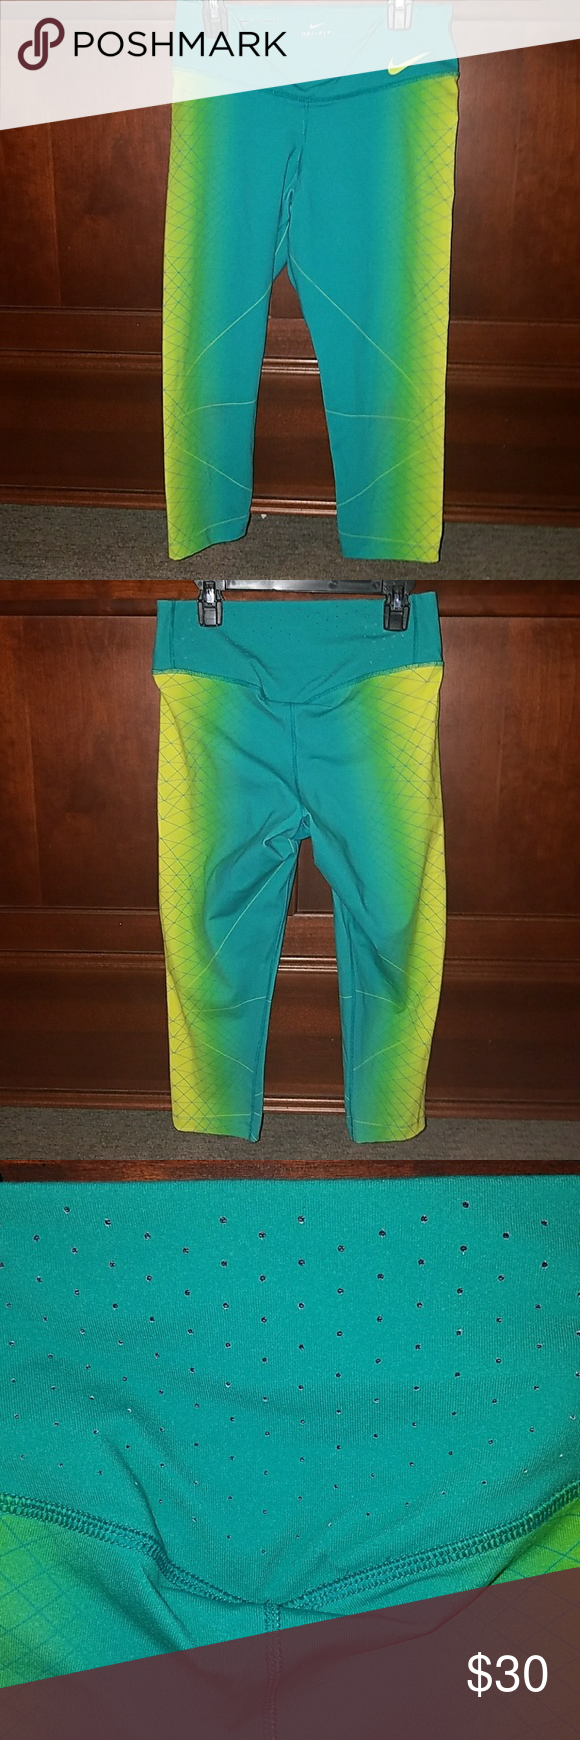 Nike running leggings Nike women's leggings. They are size medium but fit small. I will warn you they are a bit sheer if they stretch too tight! Nike Pants Leggings